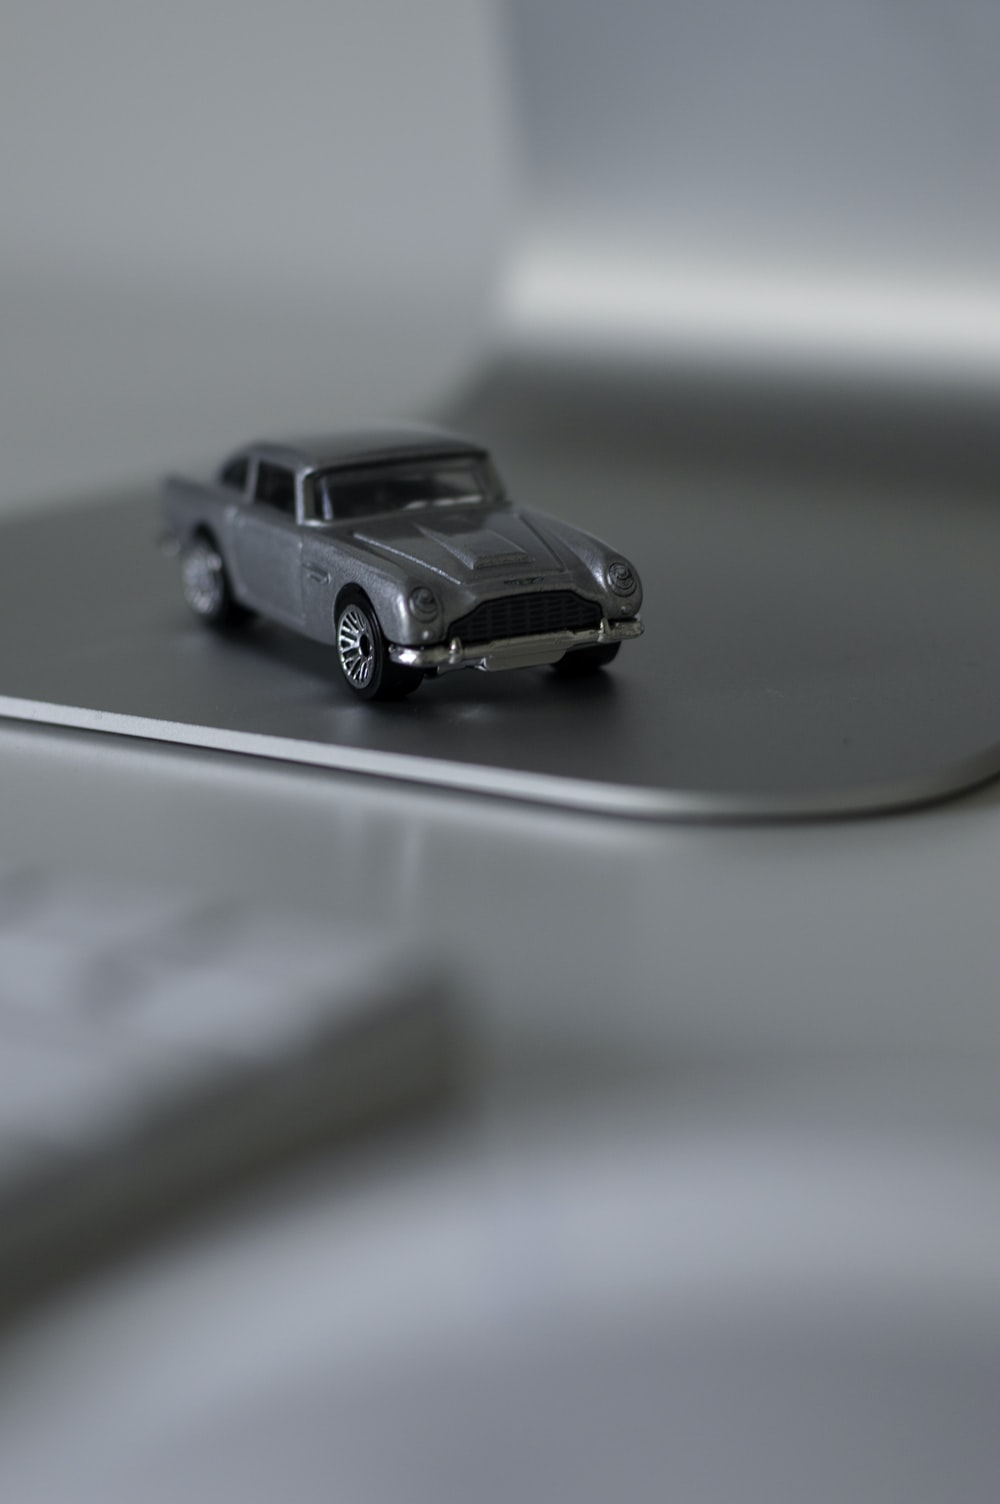 shallow focus photography of silver die-cast car model